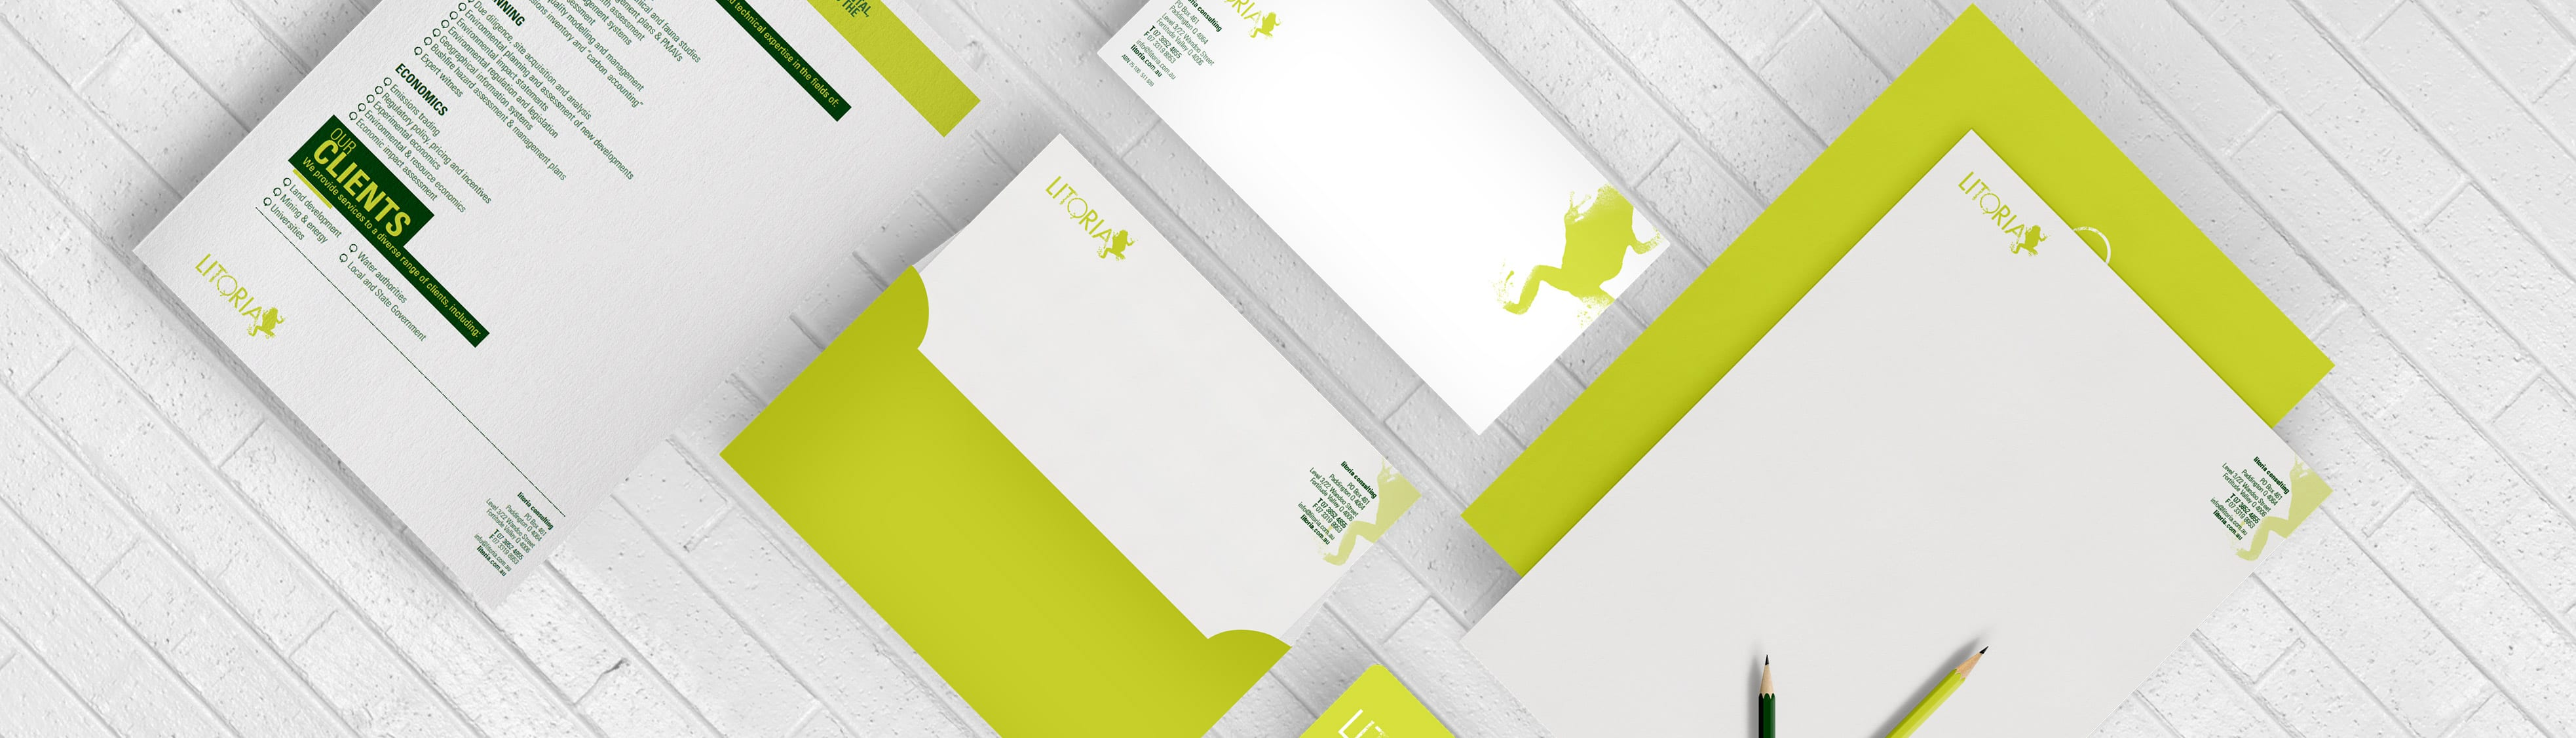 Litoria Brand Development